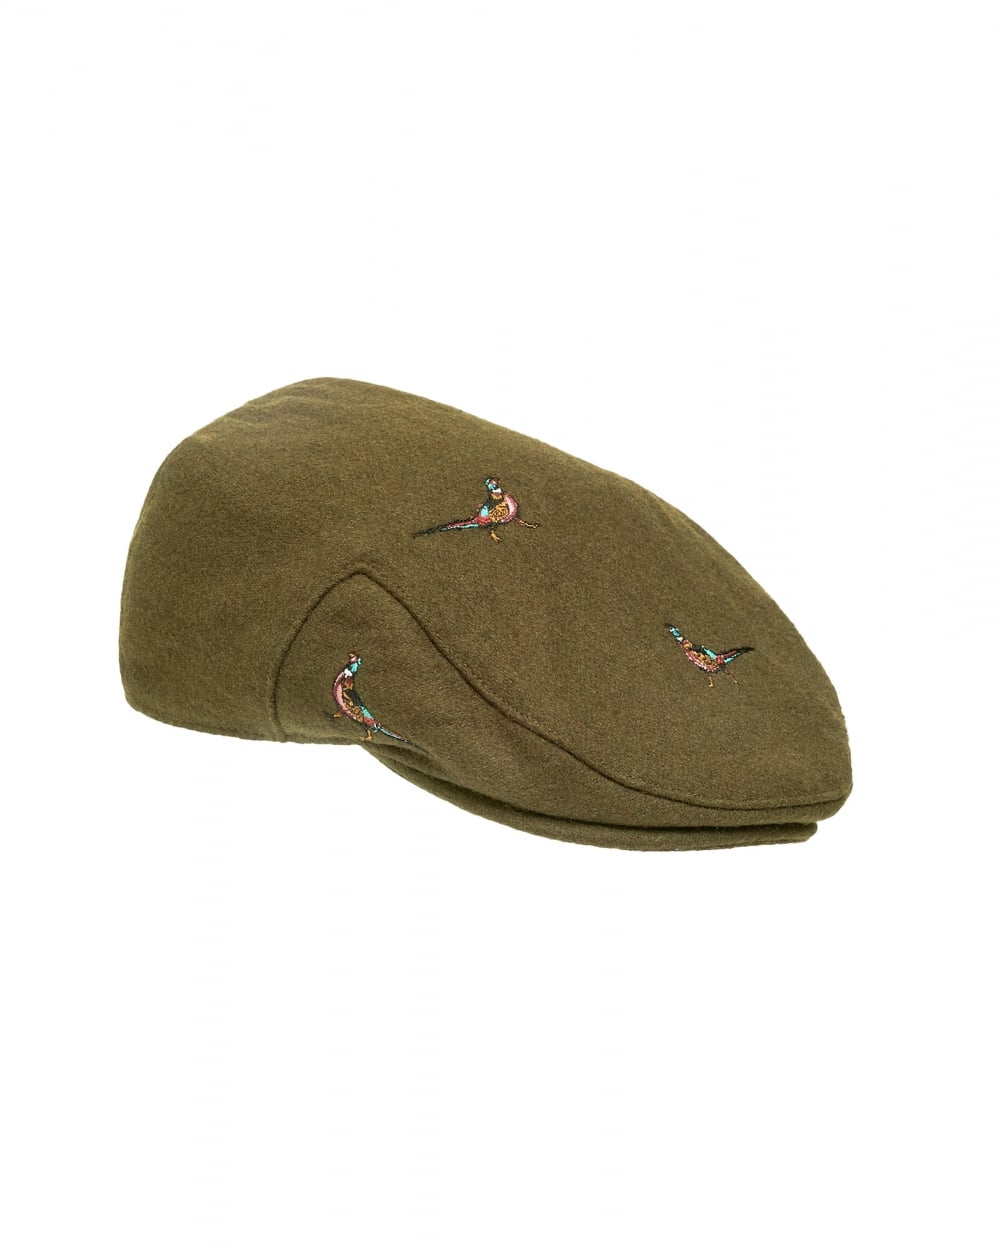 Barbour Lifestyle Mens Hat a7fc2694c52